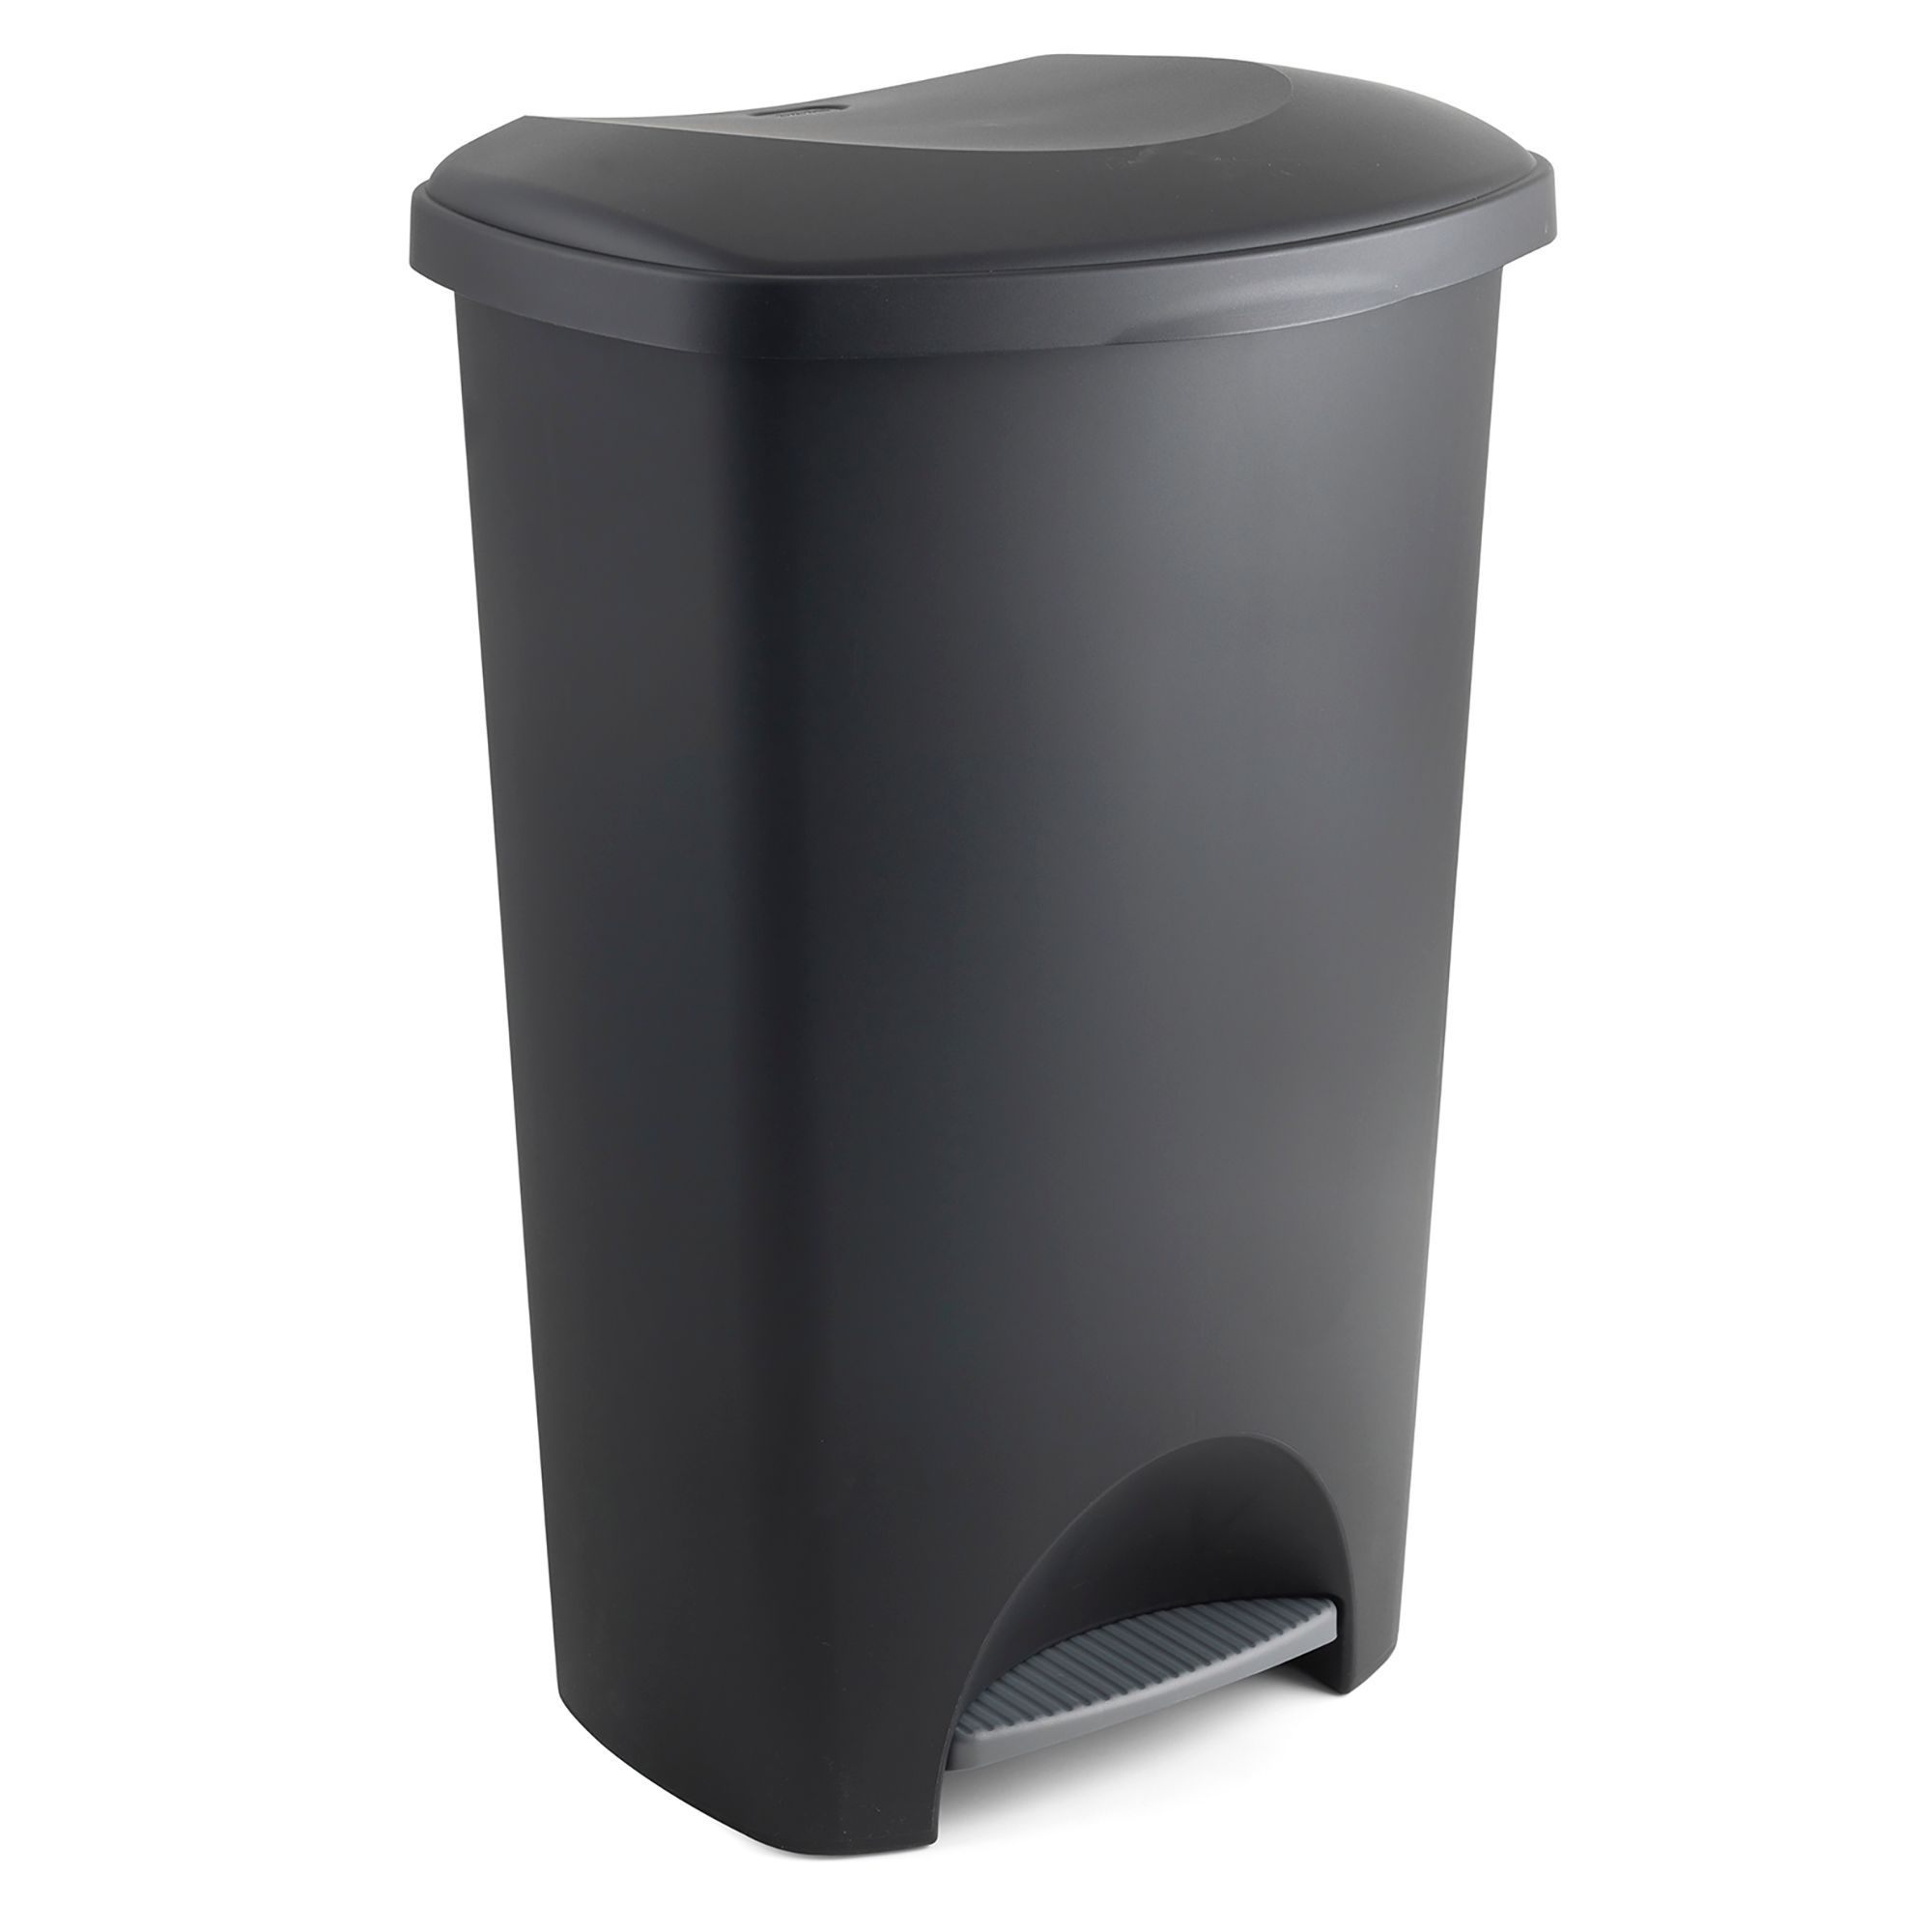 Addis Slim Matt Black Plastic Rectangular Pedal Bin, 50l